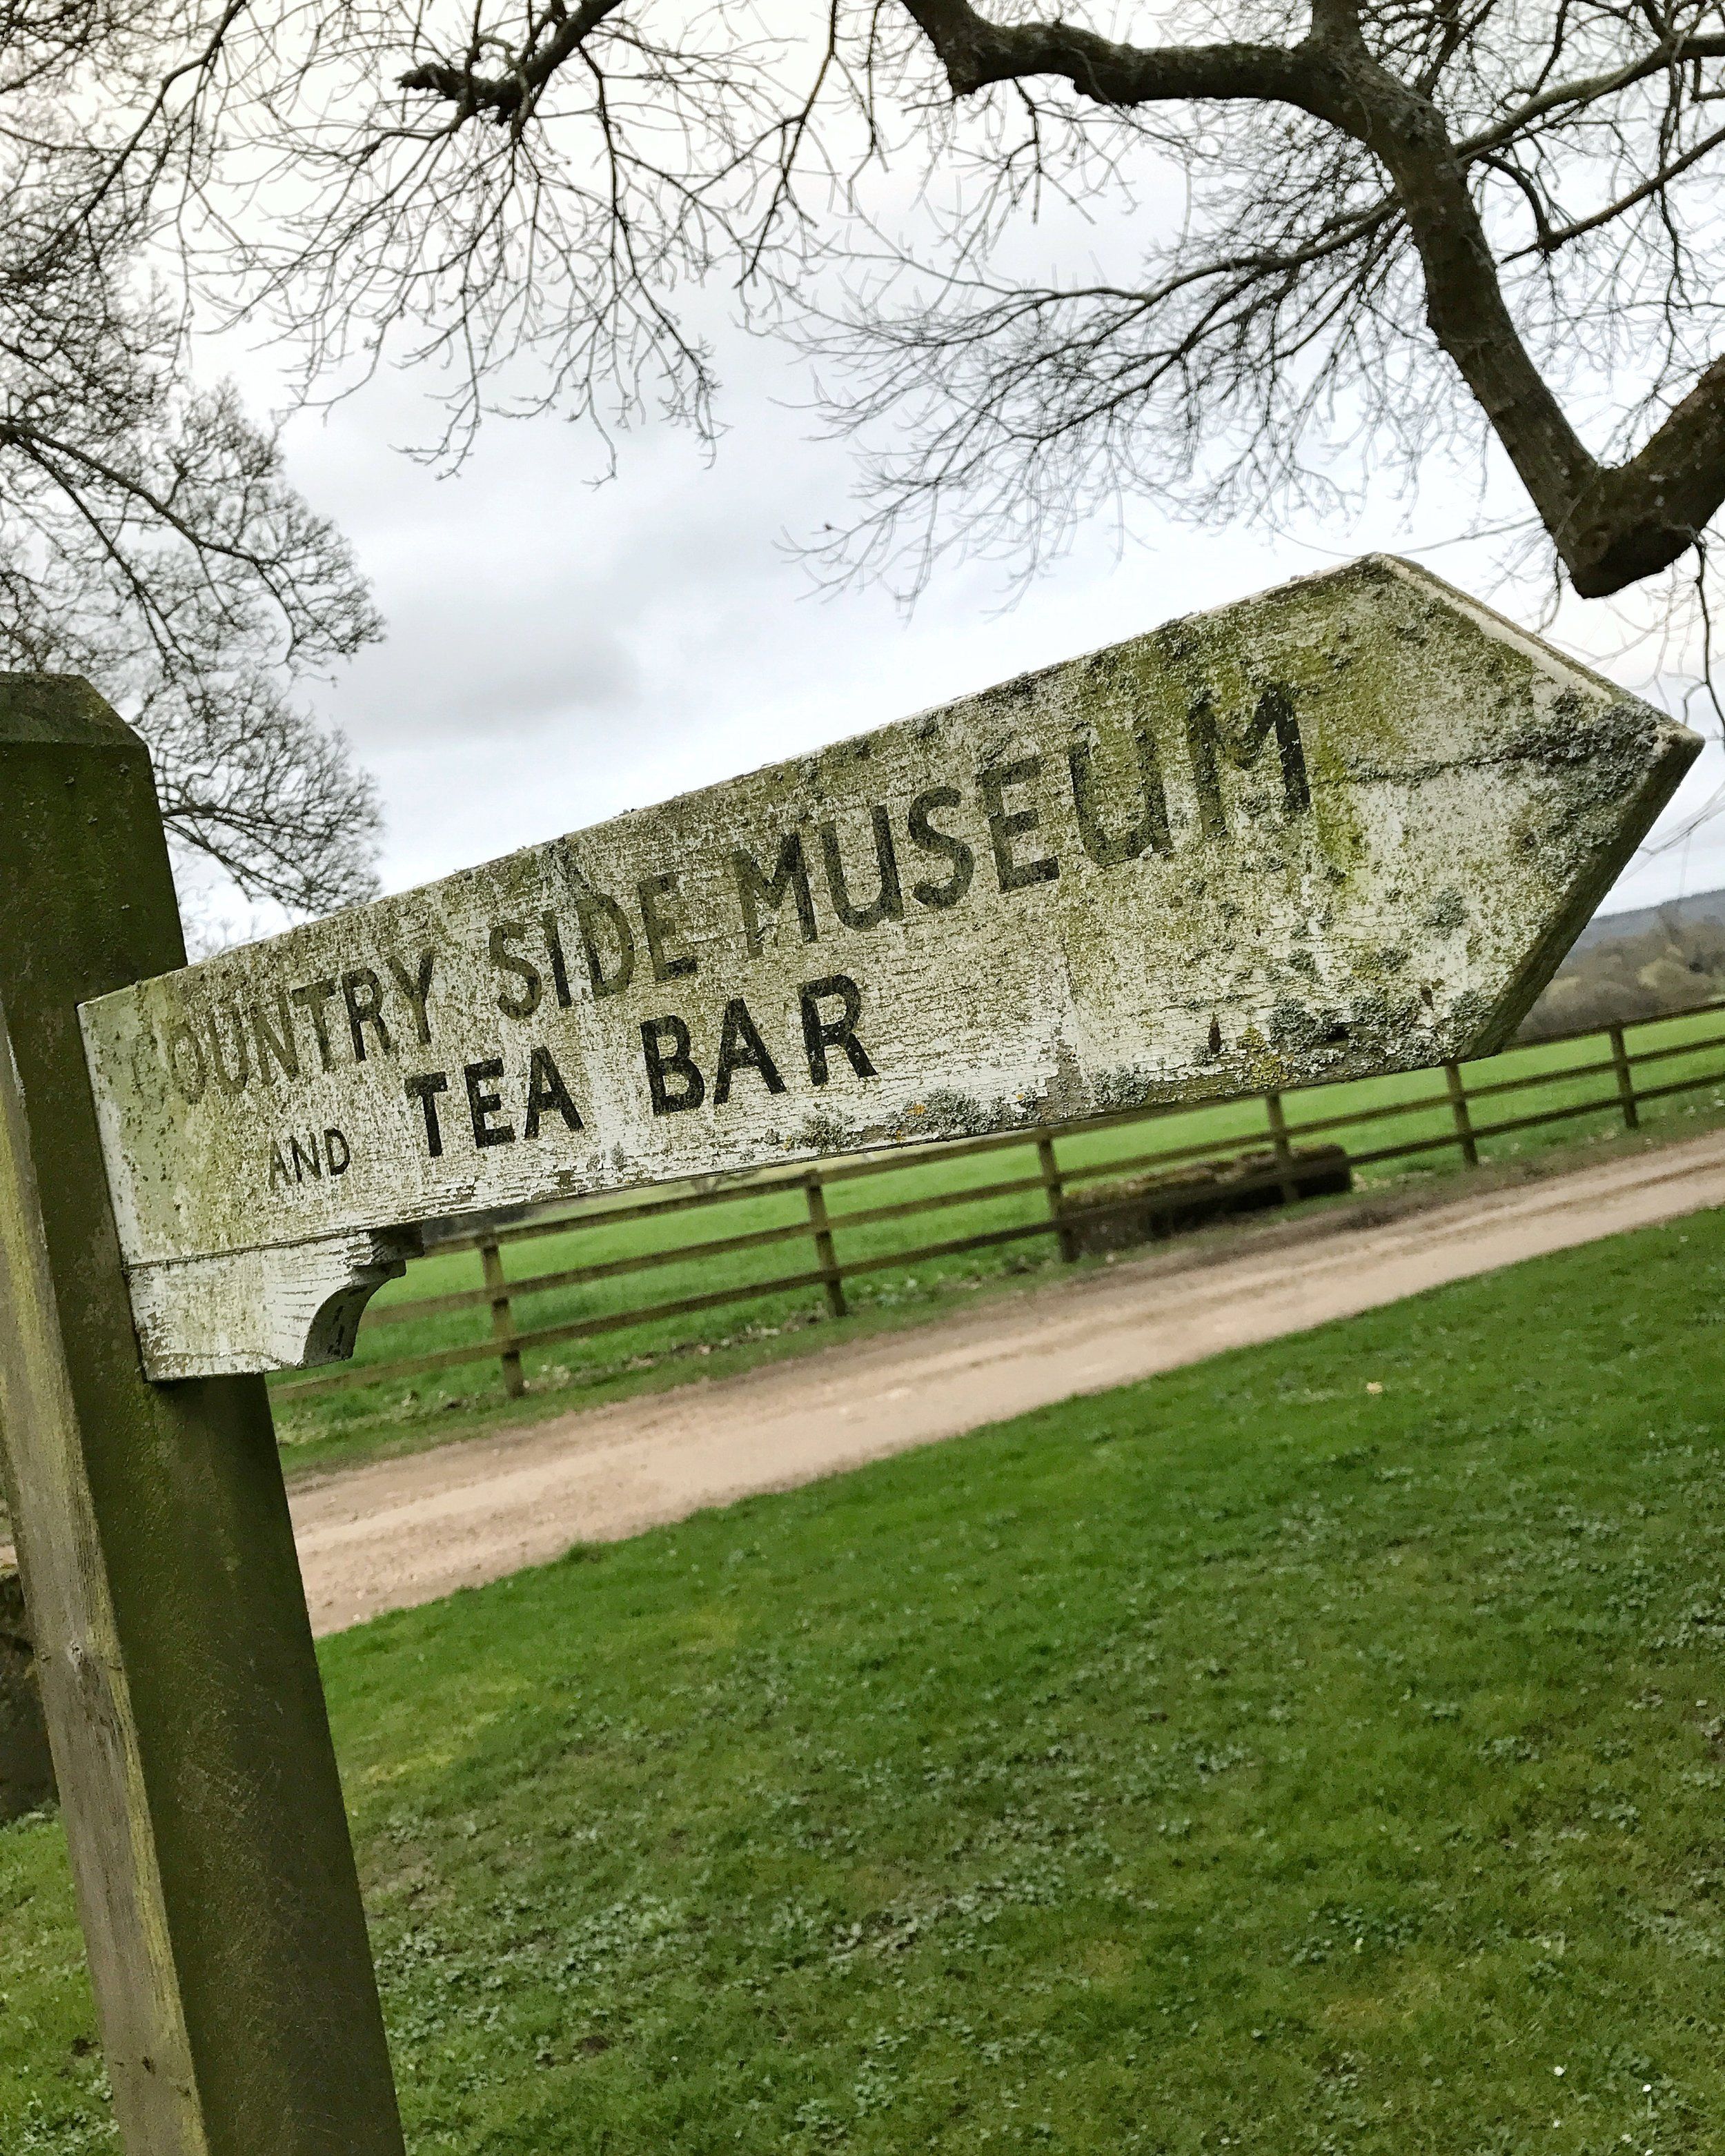 Countryside Museum & Tea Room